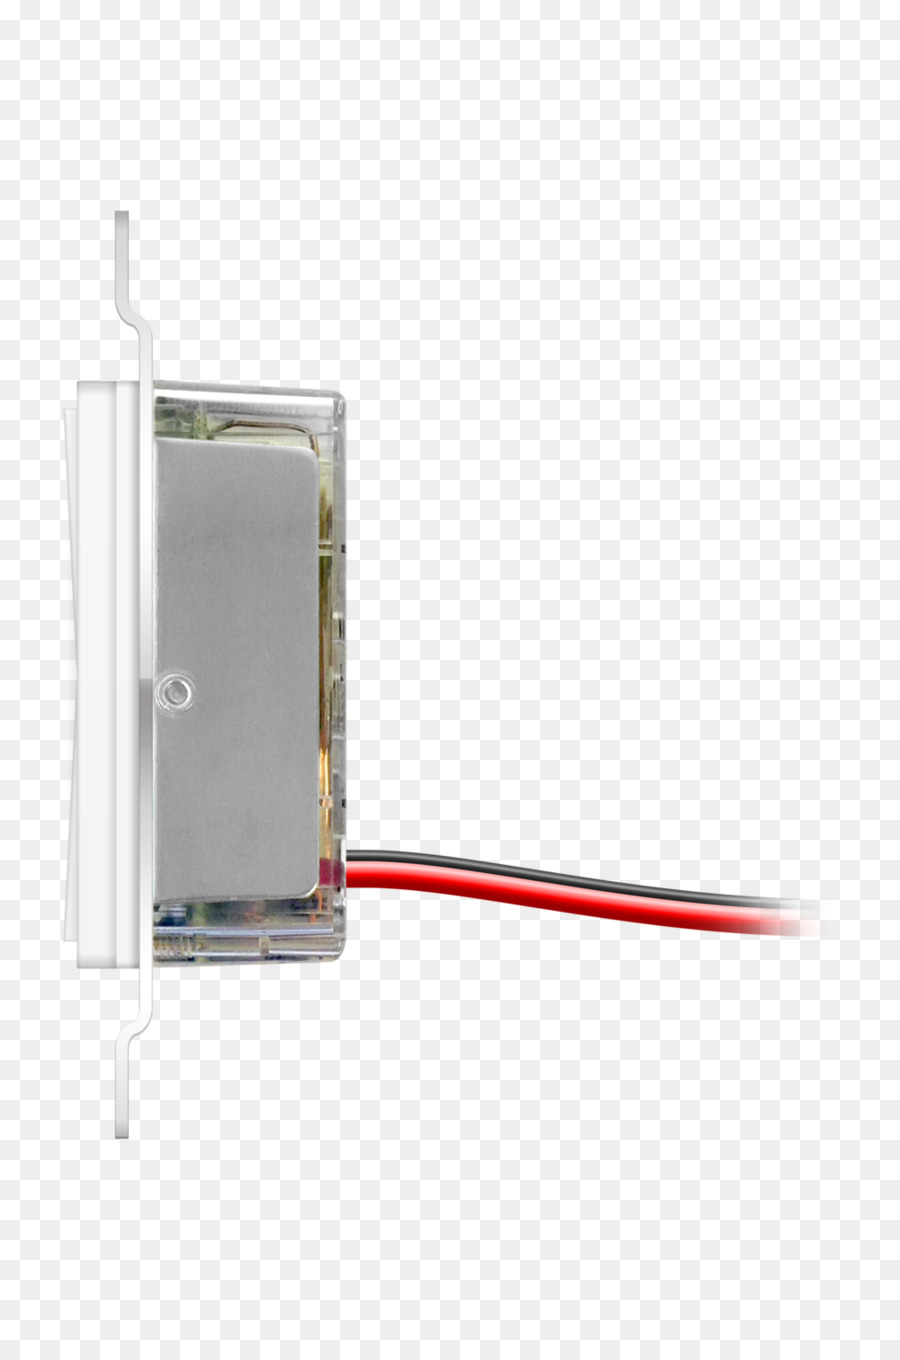 hight resolution of dimmer electrical switches latching relay electronic device electronics accessory png